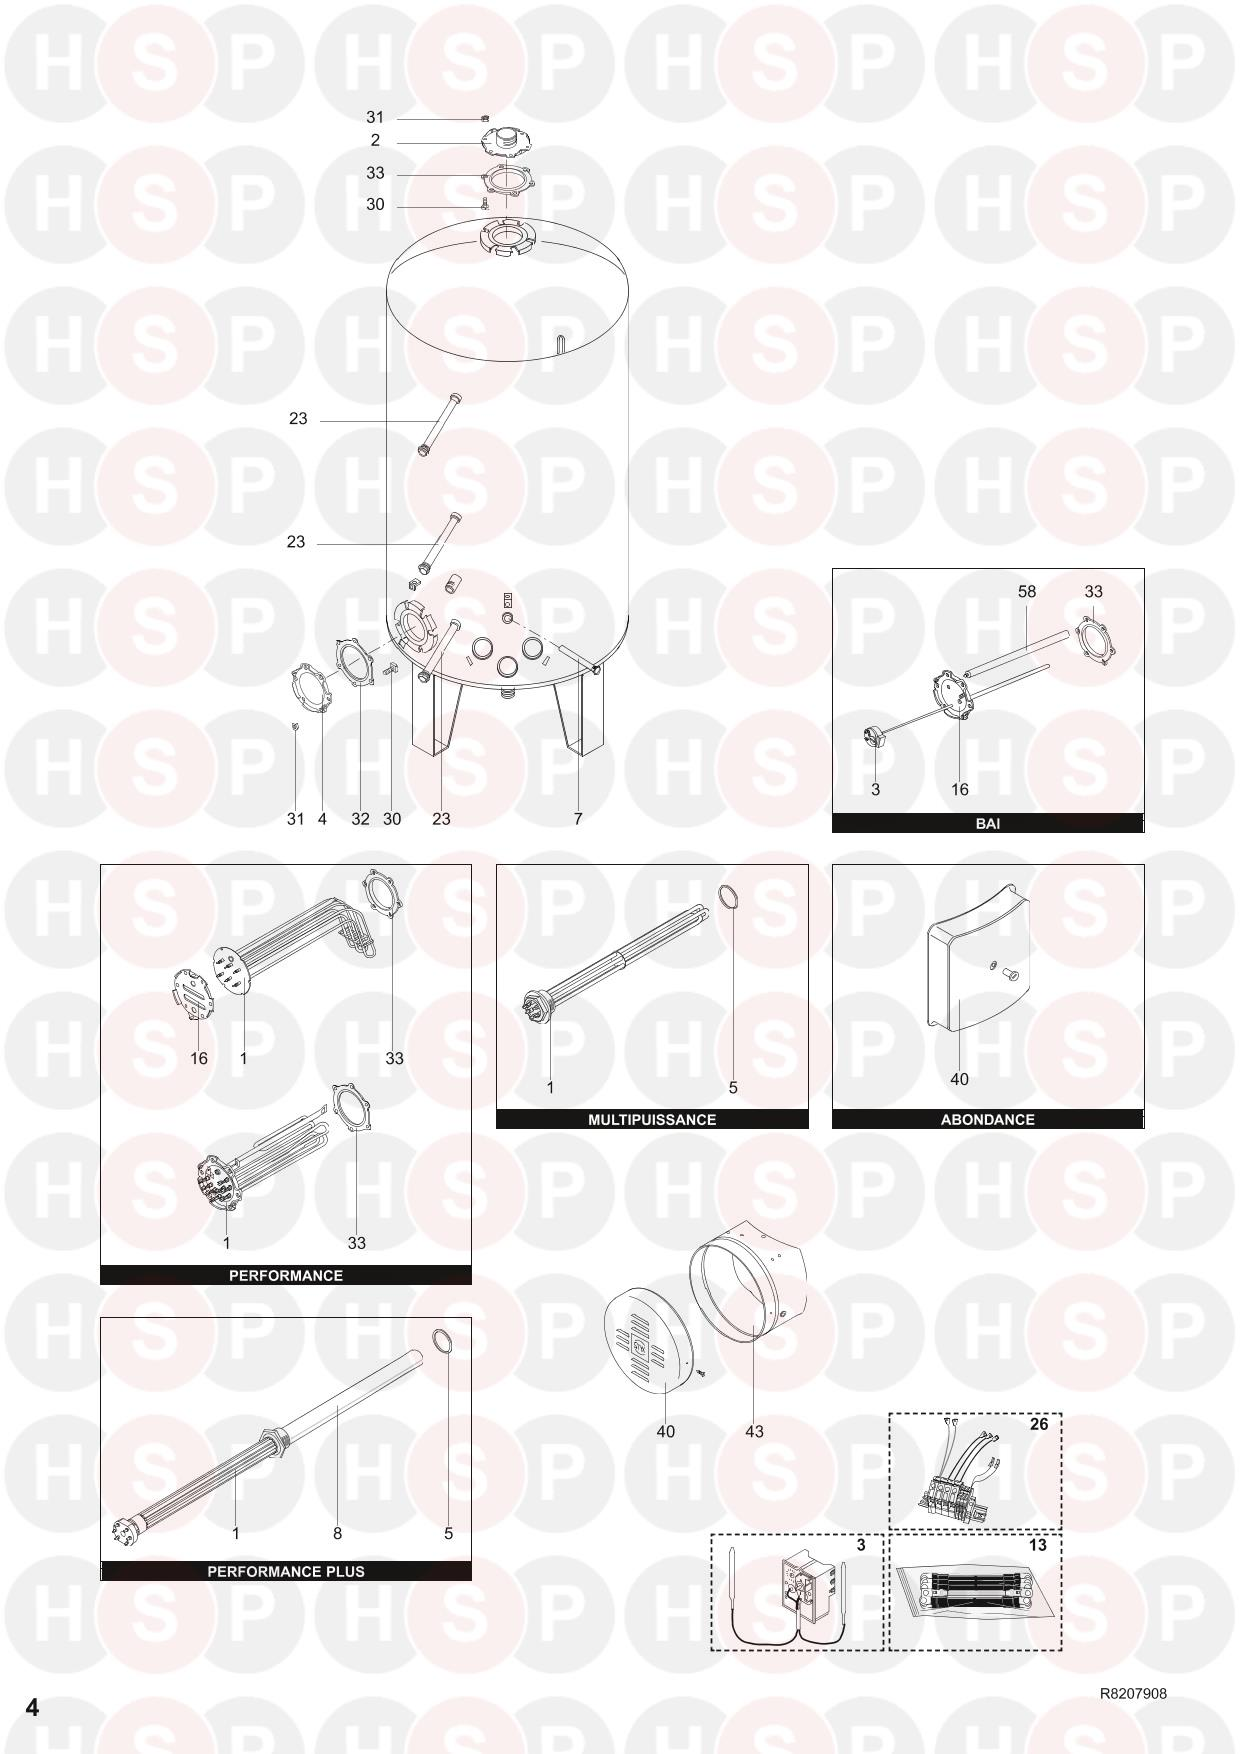 EXPLODED VIEW diagram for Ariston PERFORMANCE 2000 R8202893-05EN ED. 5 08/11/2011